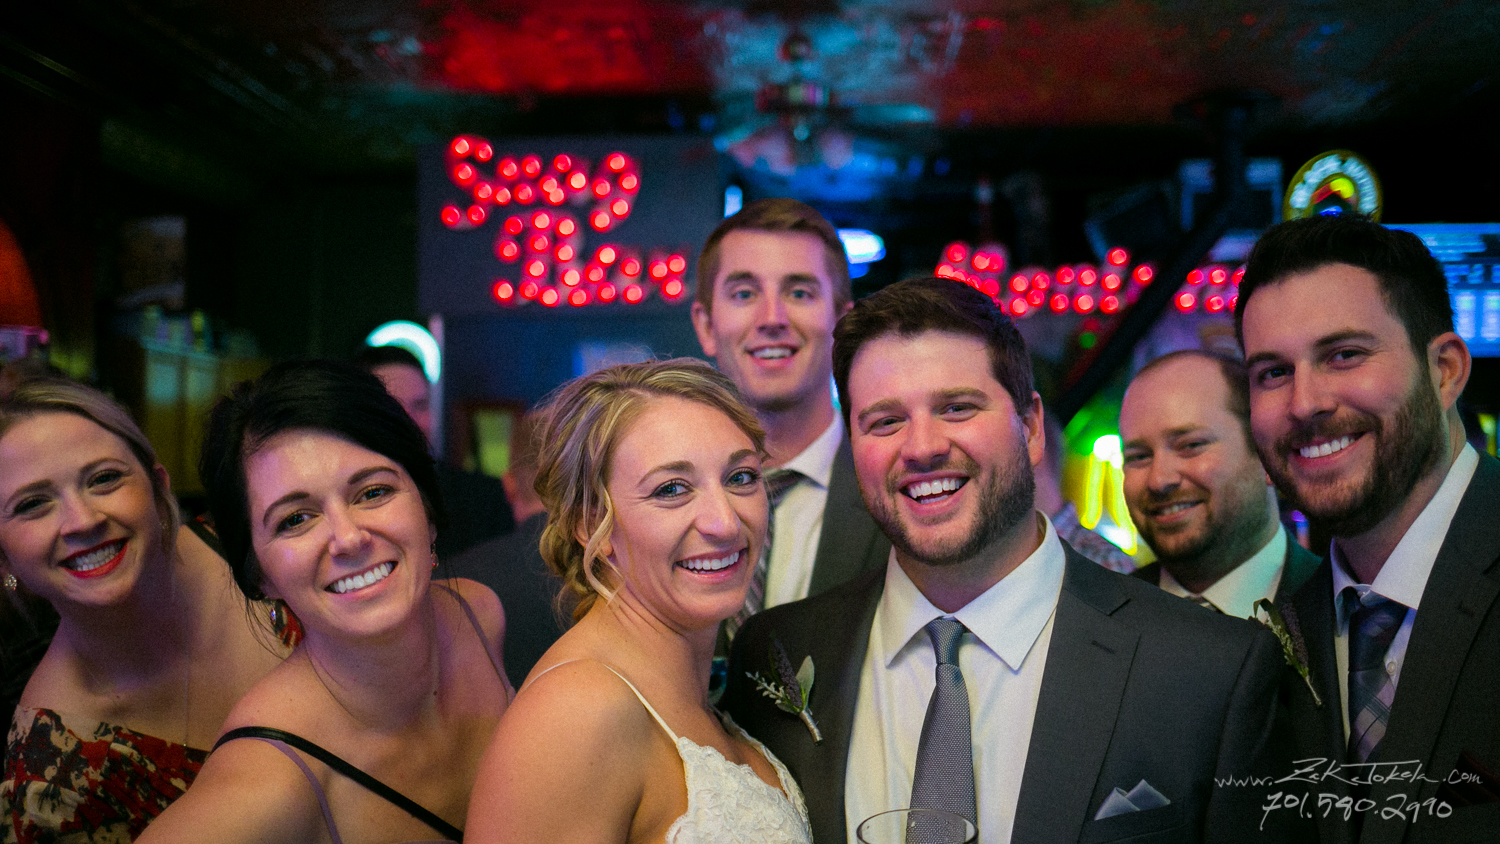 Wedding party at Snag Bar in Red Lodge, MT.